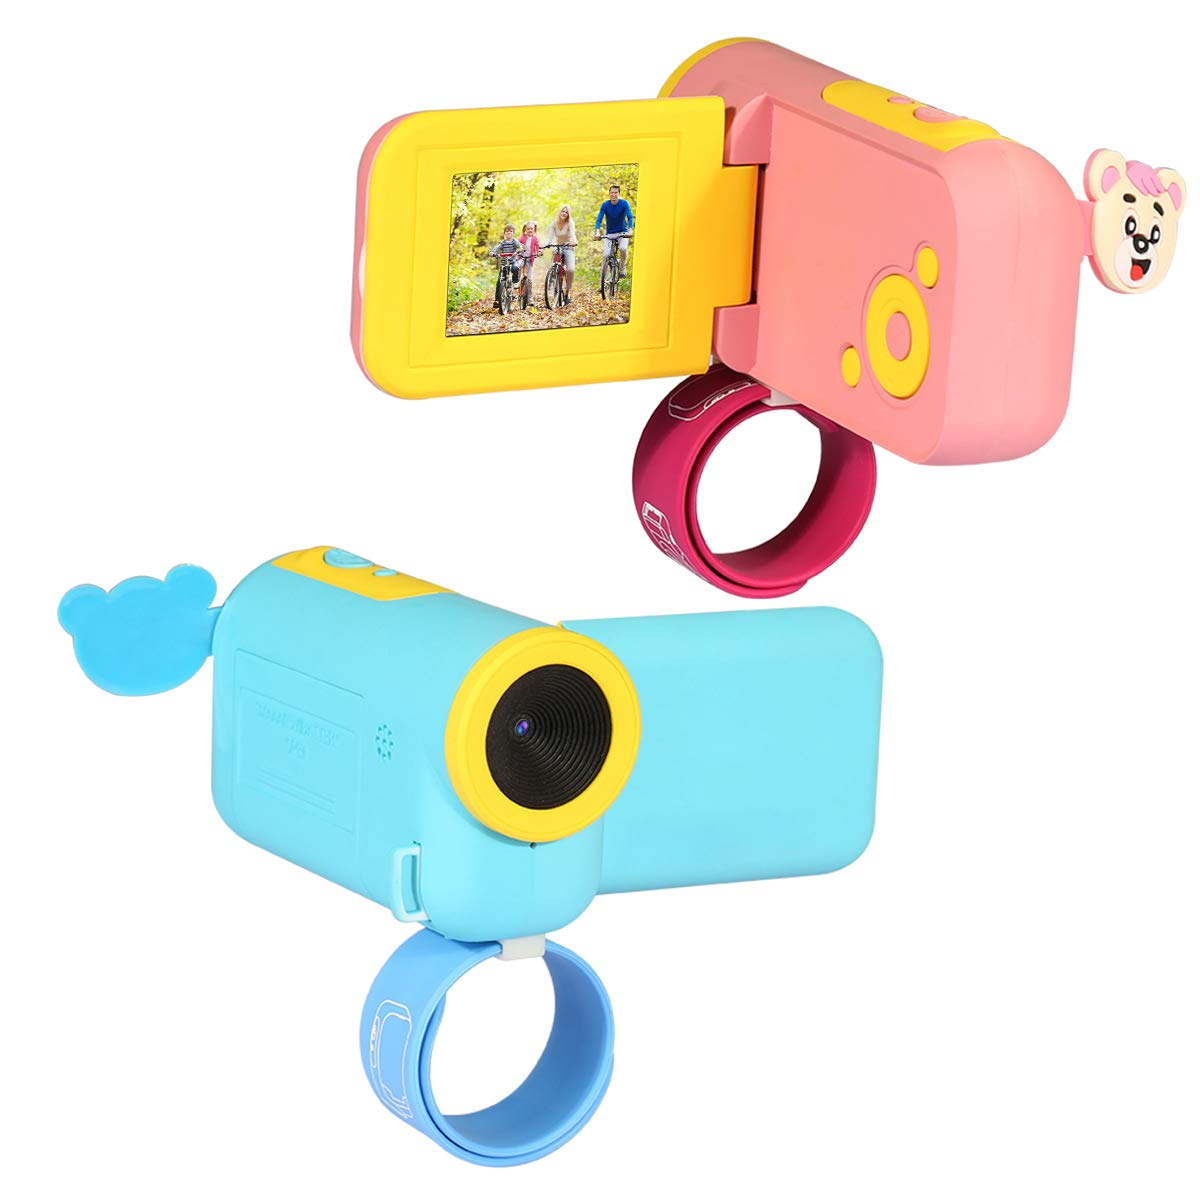 RONSHIN Kids Camera, Mini Puzzle Cartoon Cameras HD Children's Toy Digital Camera Cute Pink by RONSHIN